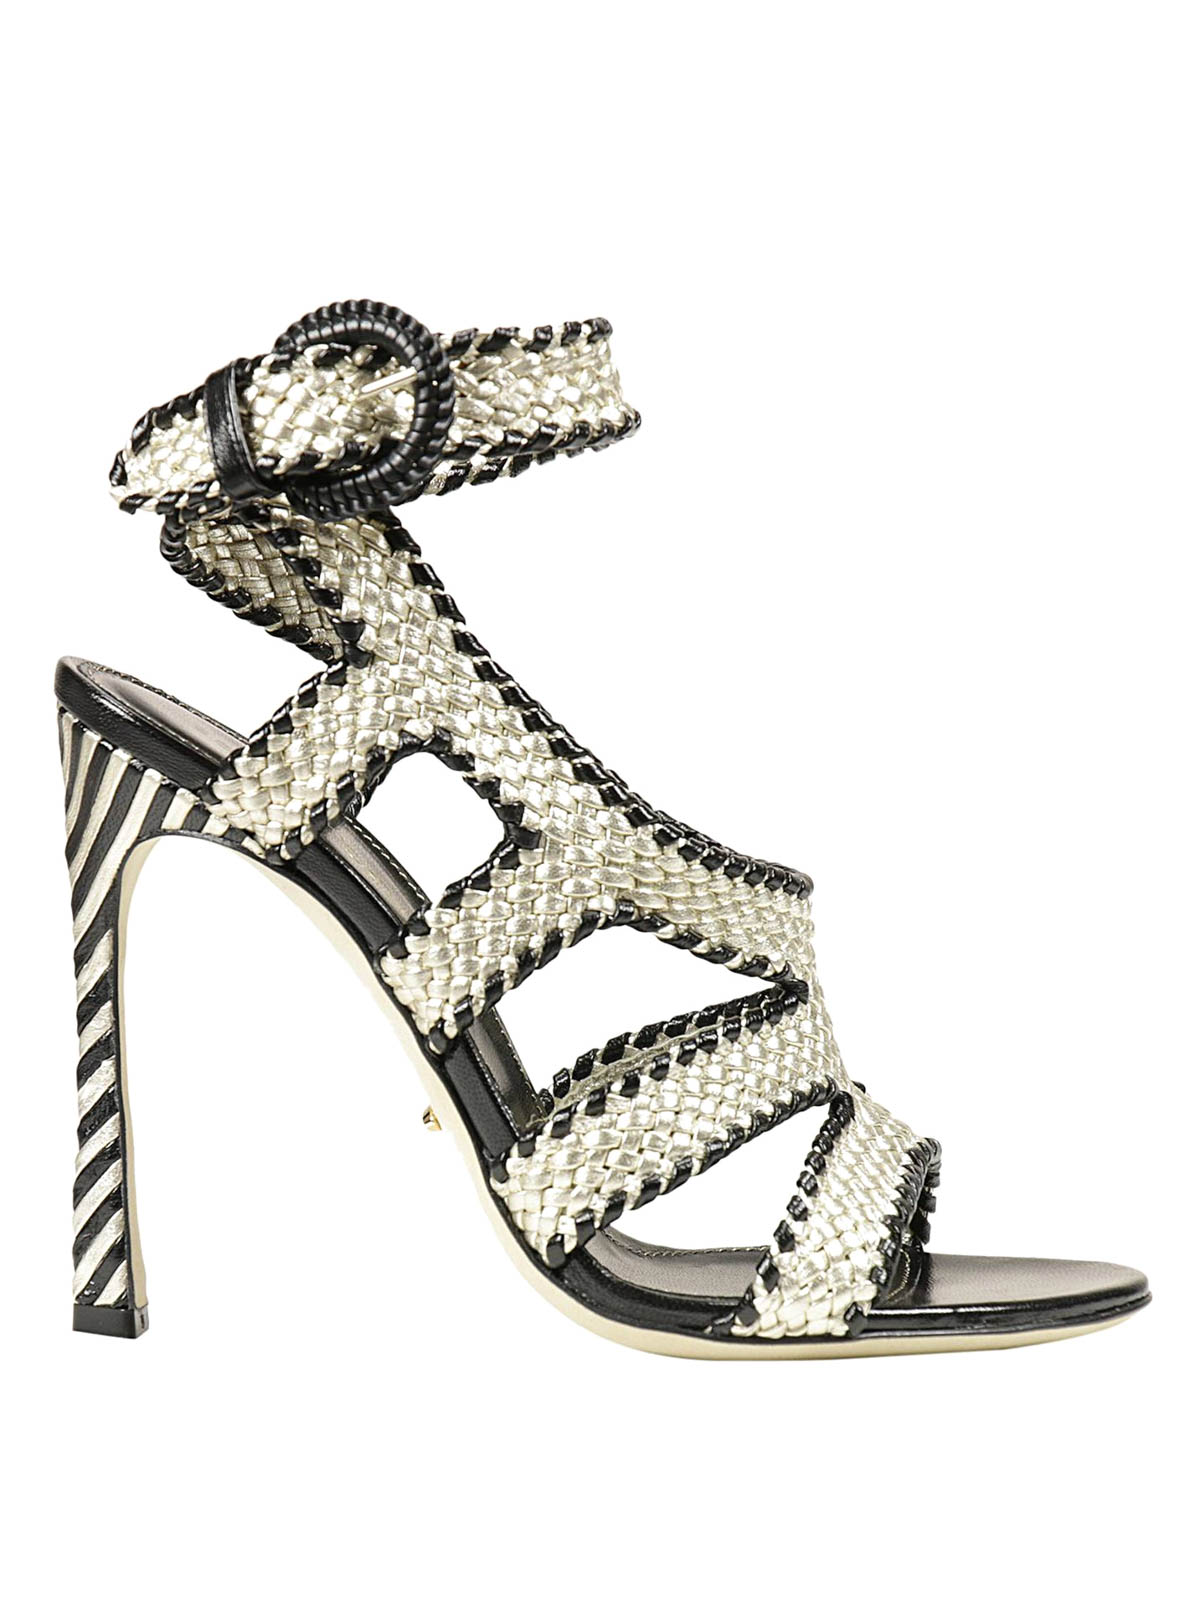 Sergio Rossi woven sandals cheap price for sale discount clearance store latest collections outlet good selling wholesale online 1SIbgTTk